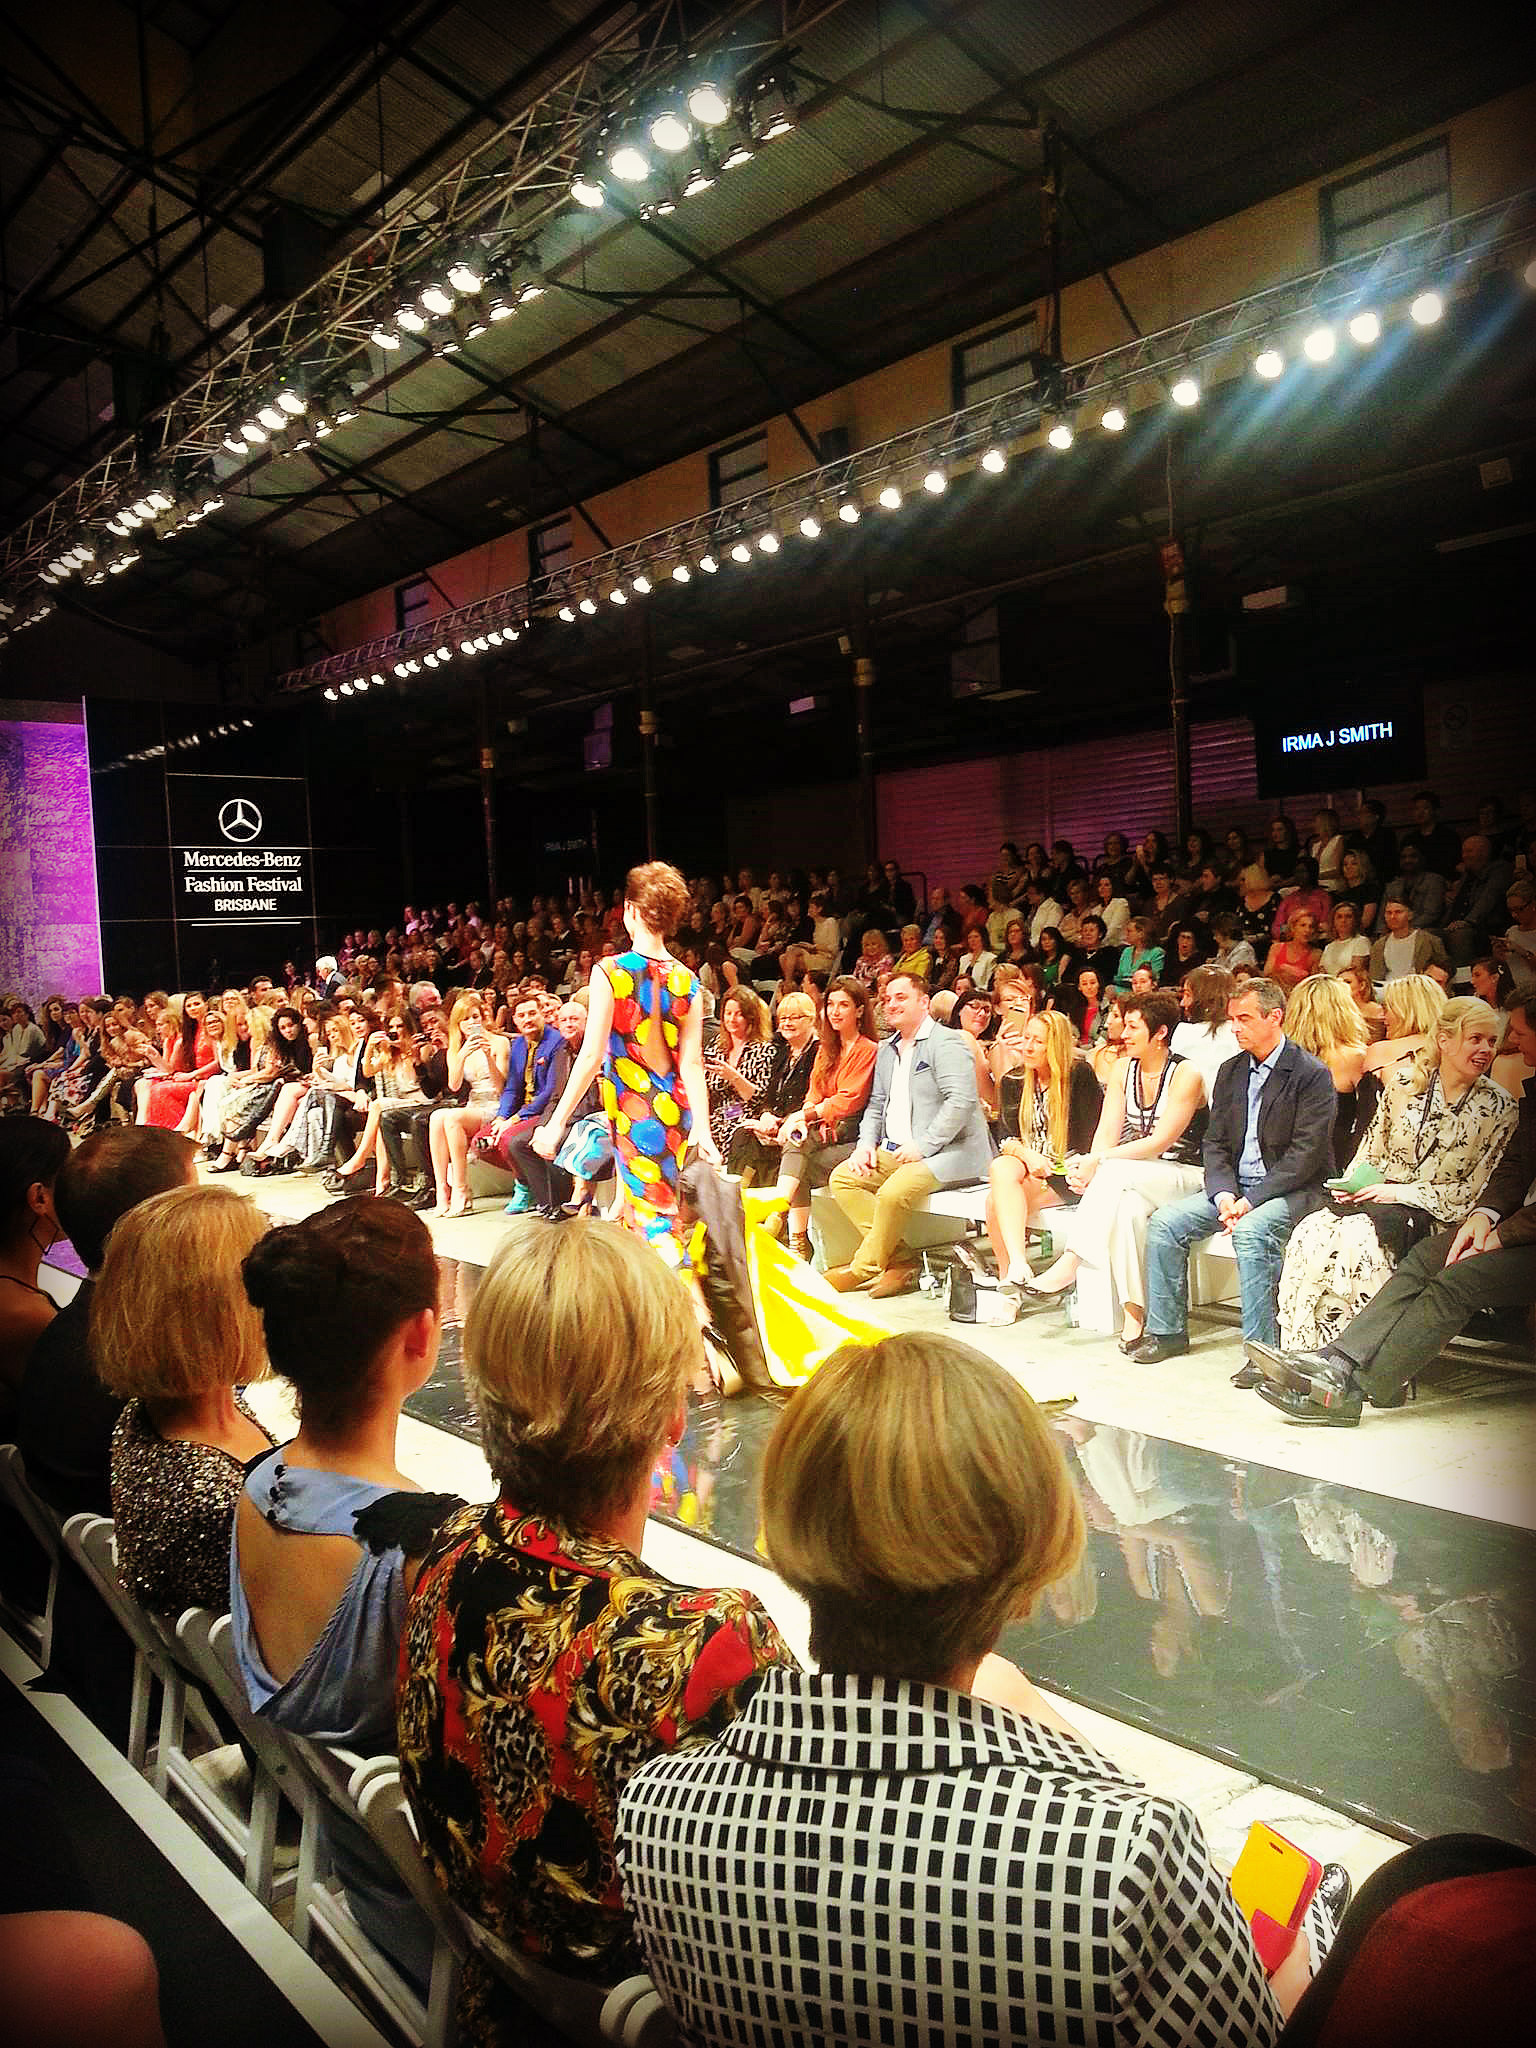 Brisbane Arcade Group Fashion Show, MBFF Brisbane